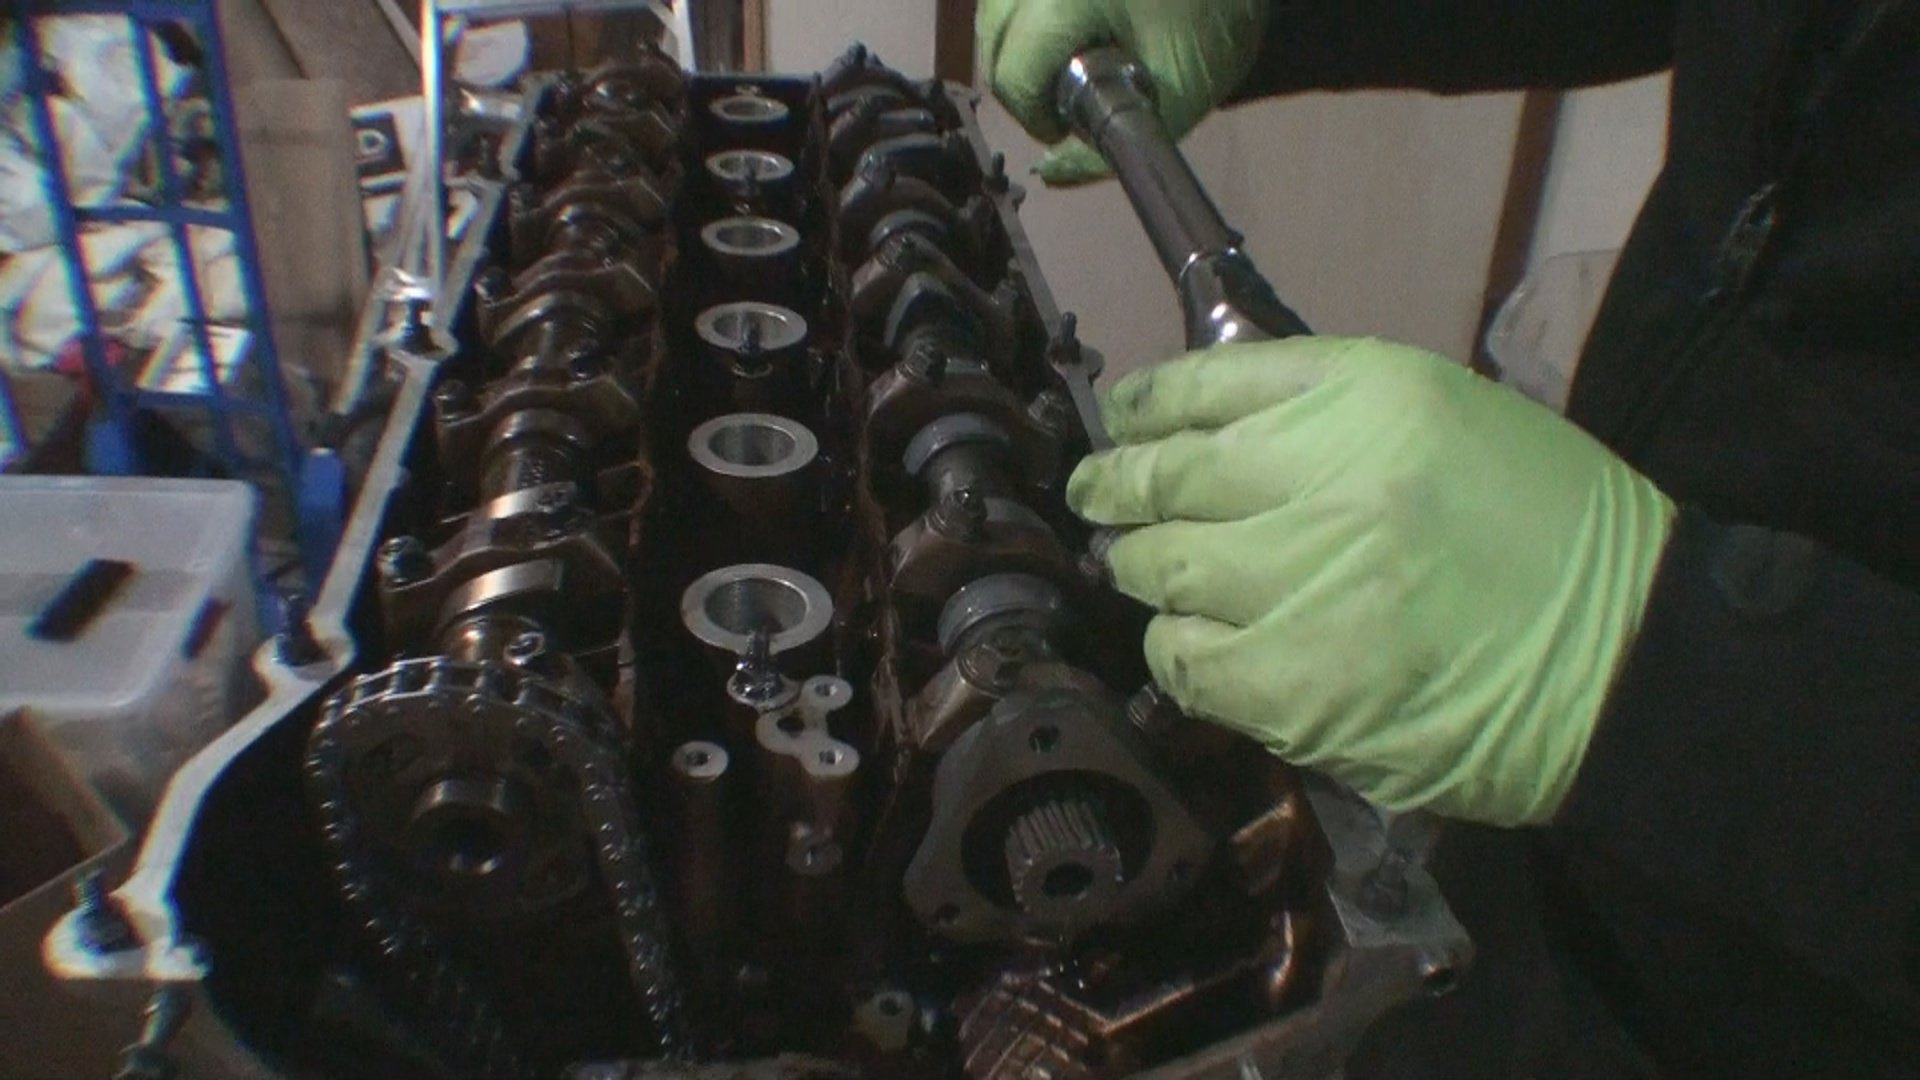 How To Install Camshafts On A BMW M50/S50 Or M52/S52 Engine